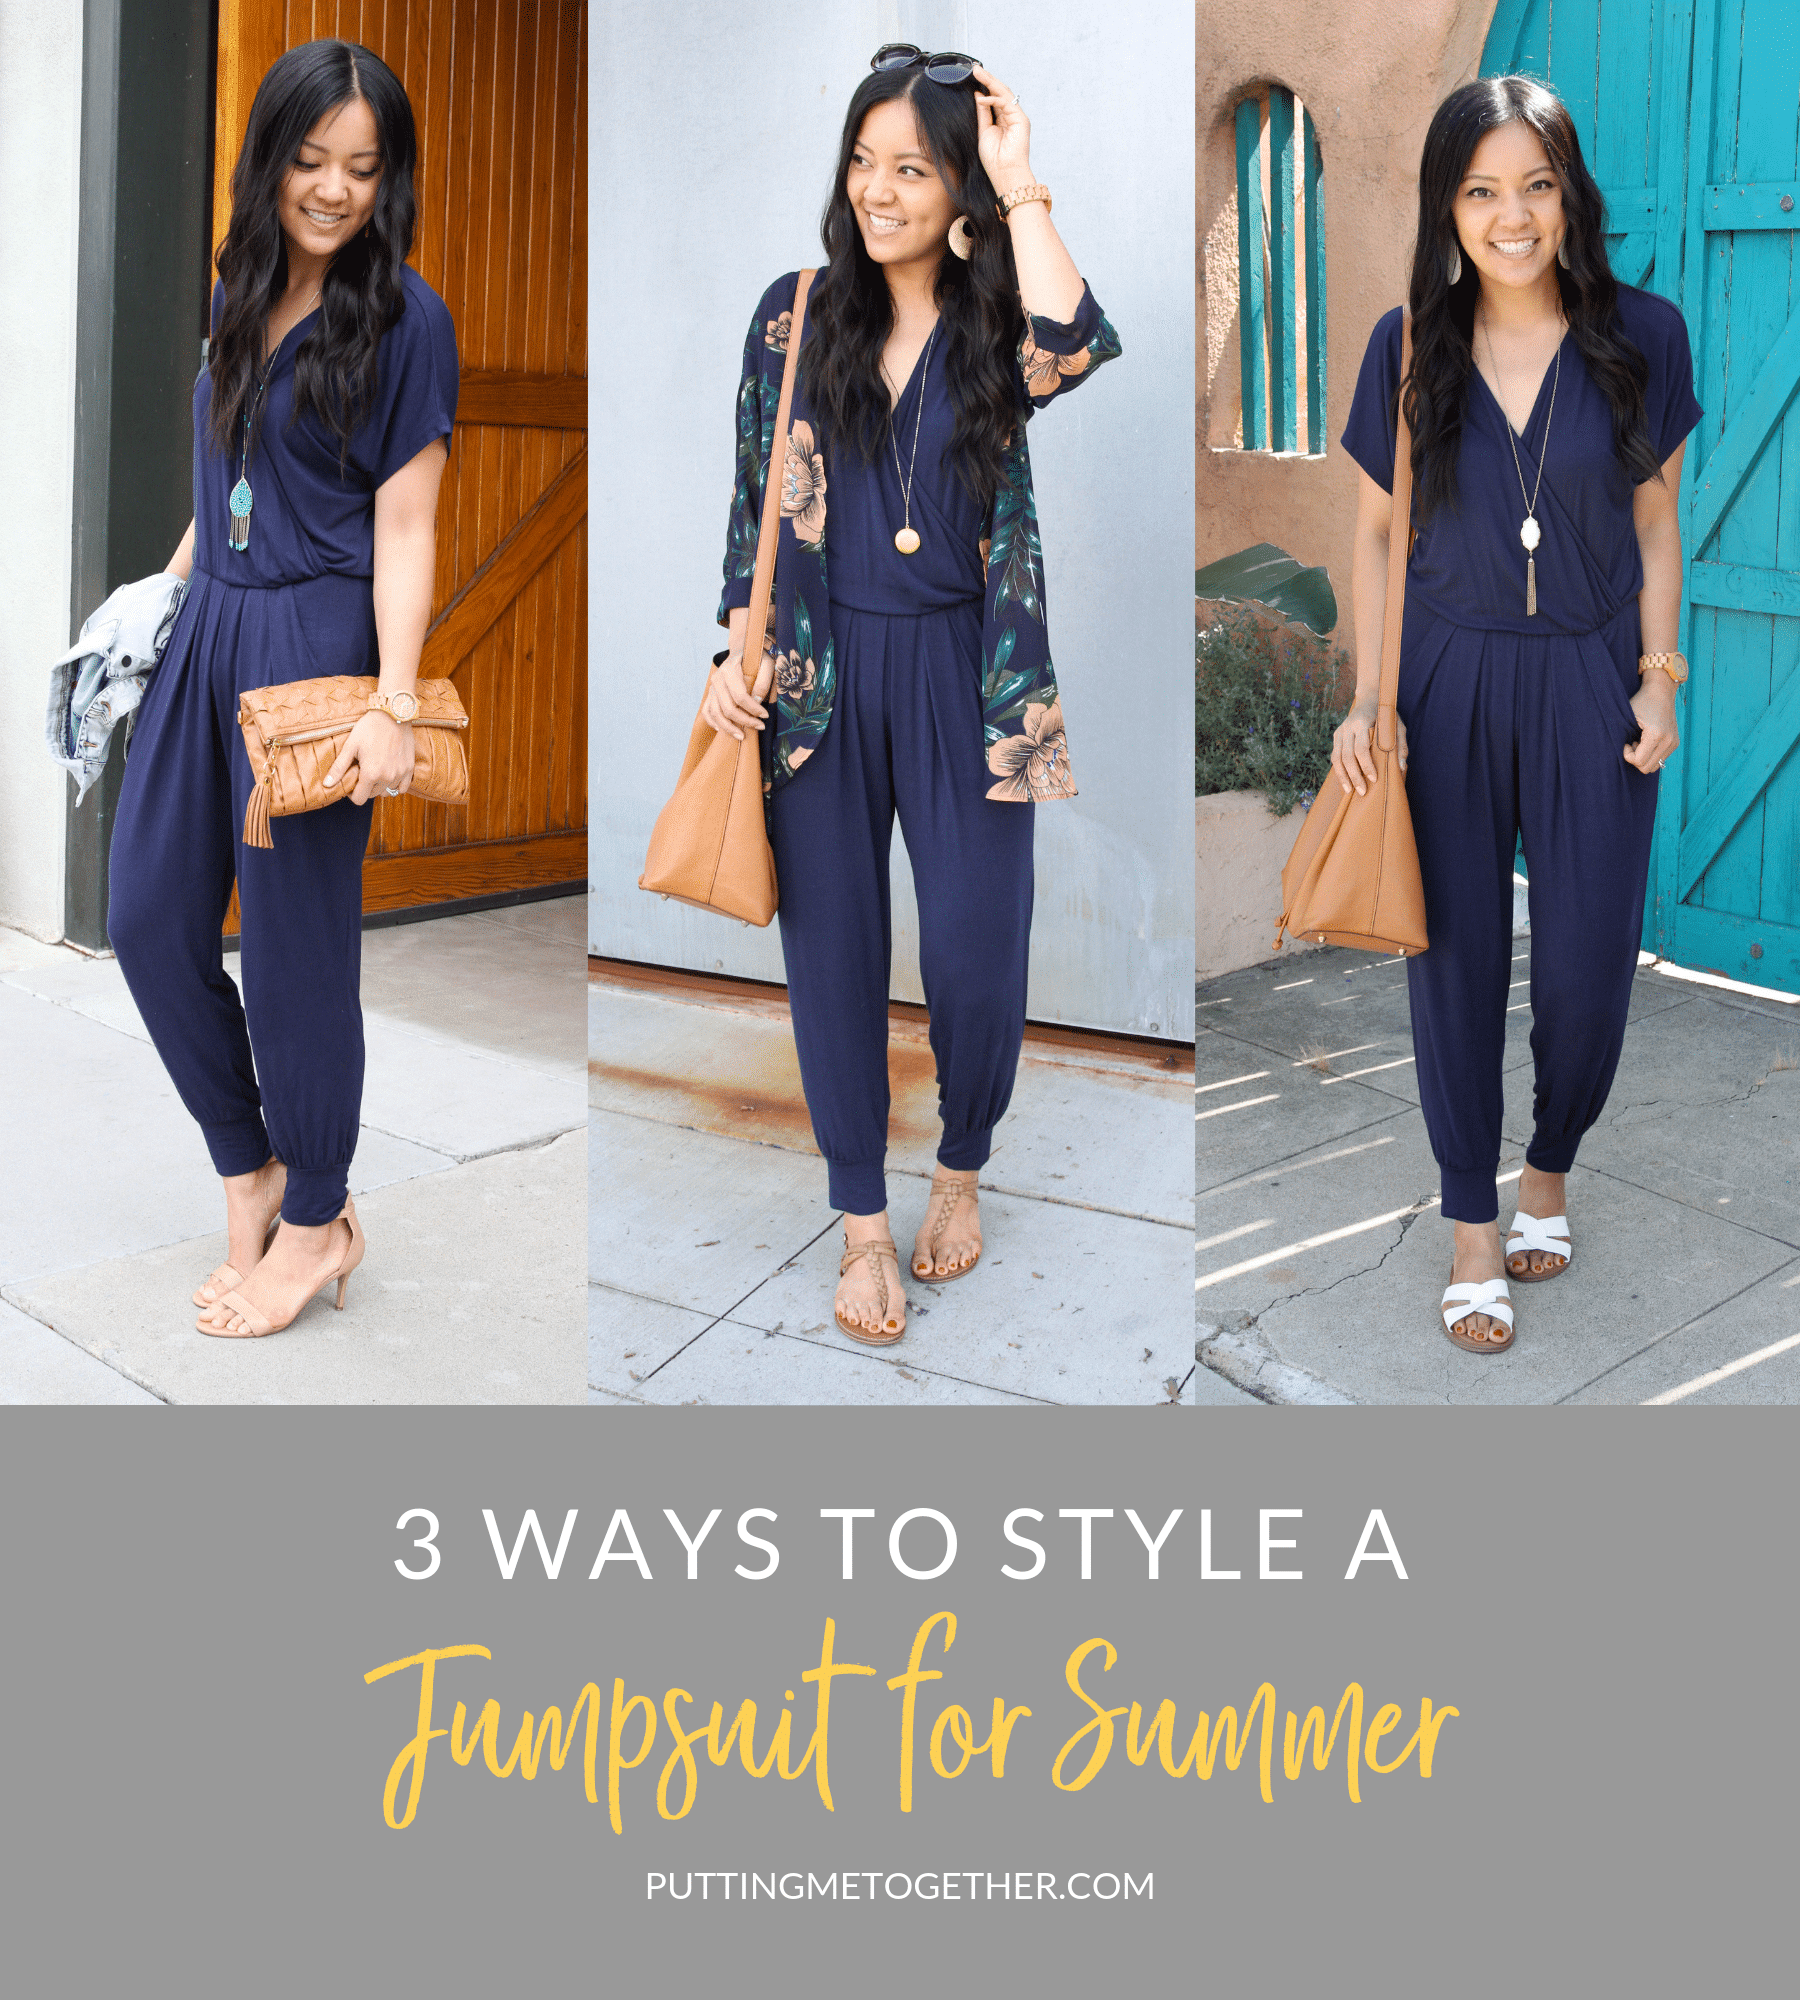 3 Ways to Style a Jumpsuit for Summer